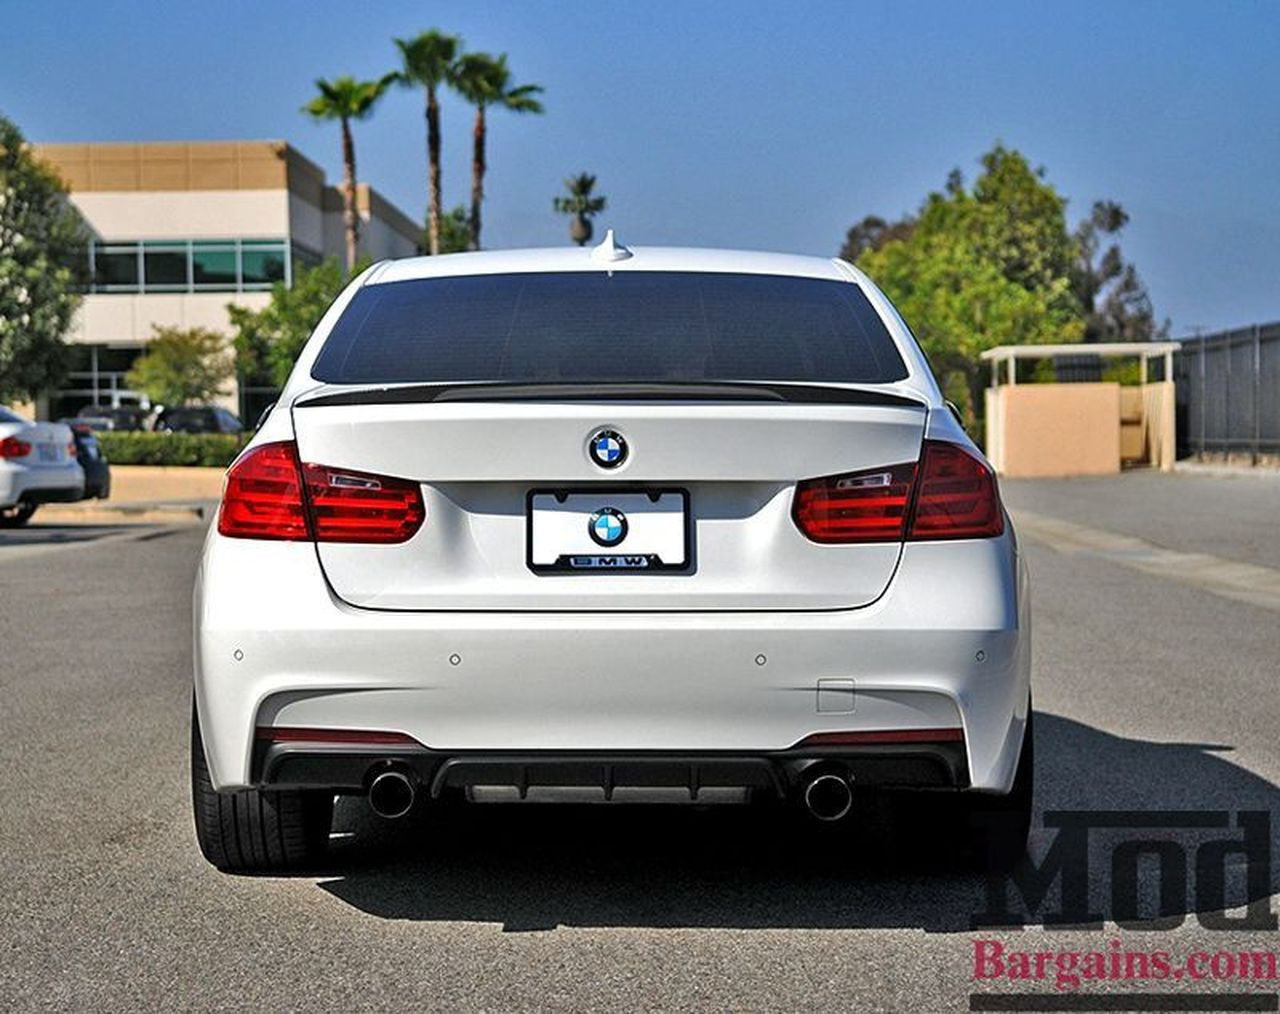 Carbon Fiber Rear Diffuser For 2011 17 Bmw 328i 335i M Sport F30 Performance Style Dual Quad Tips Extreme Power House